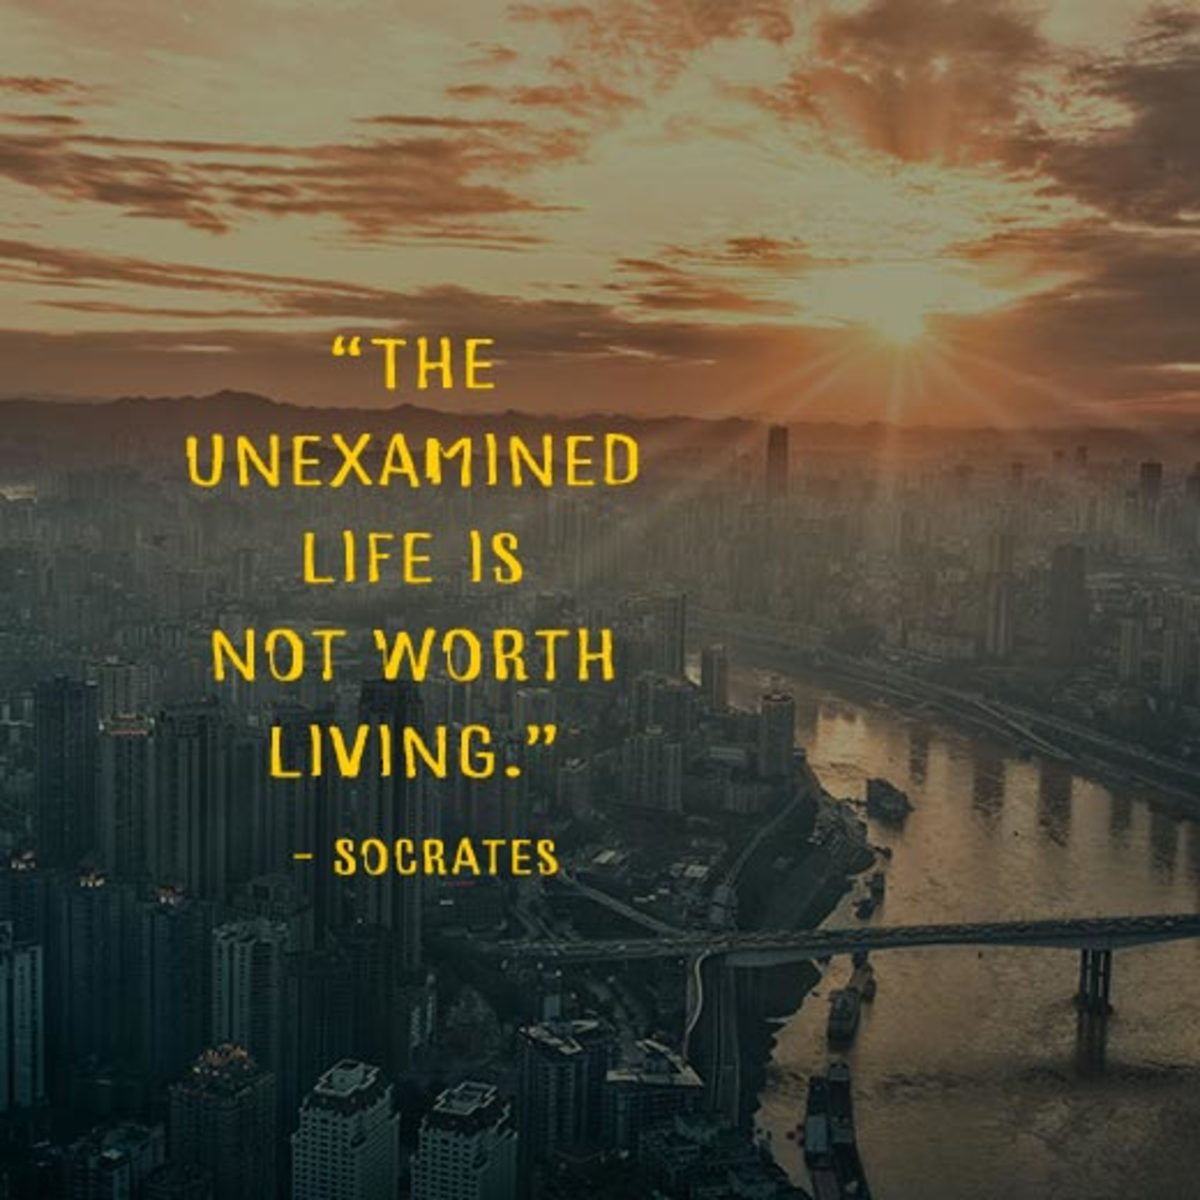 """The unexamined life is not worth living."" —Socrates"